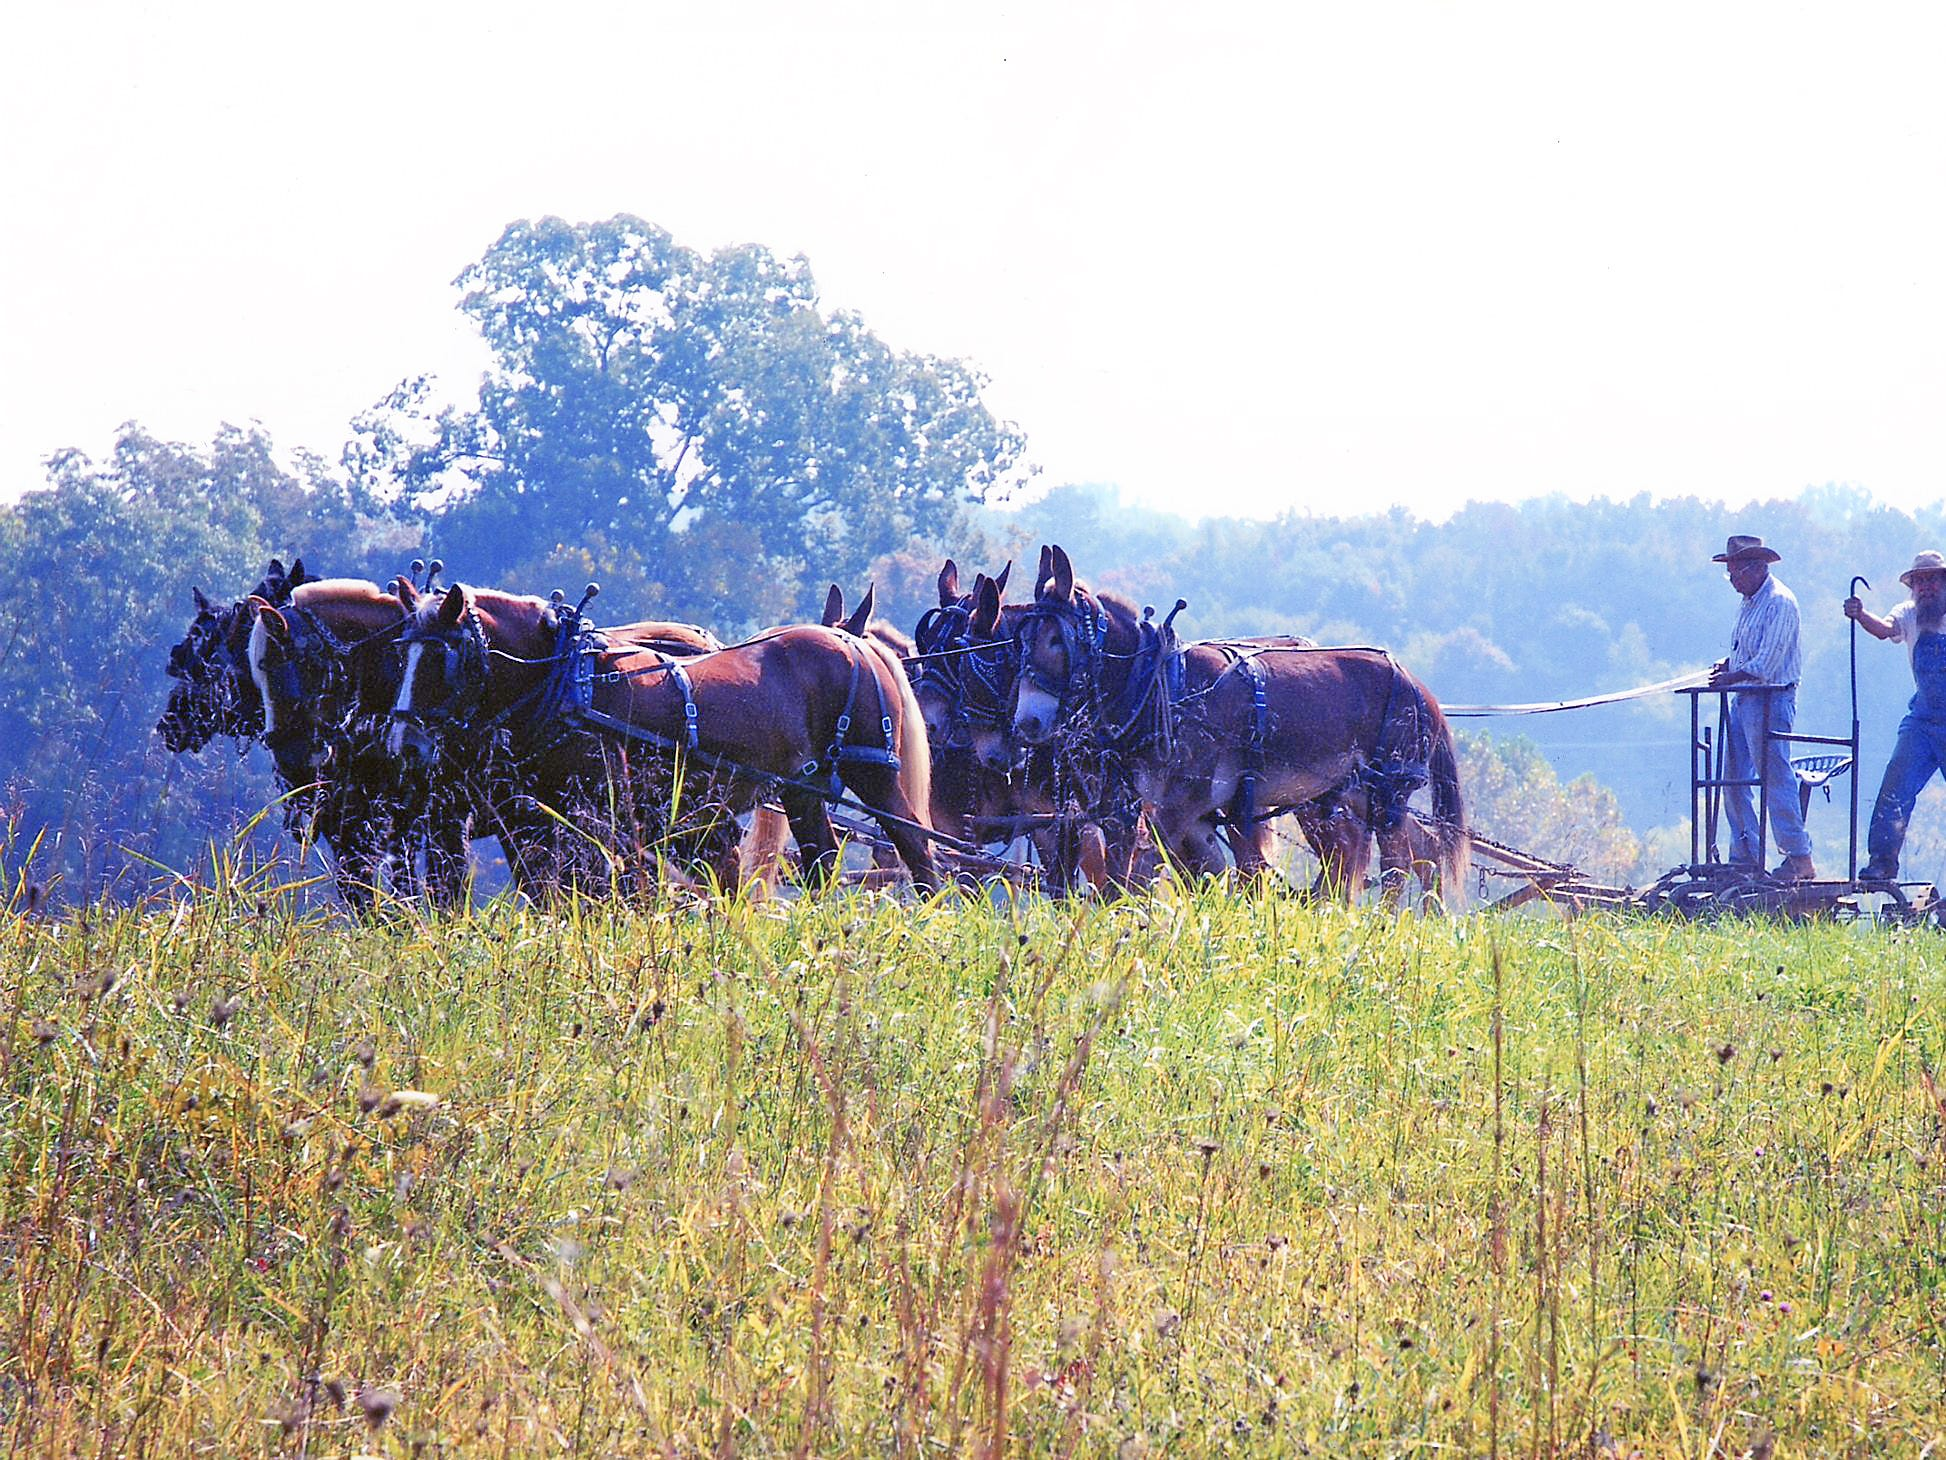 "This photo was taken off Murphy Road in 2006 when two gentlemen were plowing a field using a horse-drawn plow. It was featured on the cover of a North/East Shopper News and was titled ""The Simple Life""."